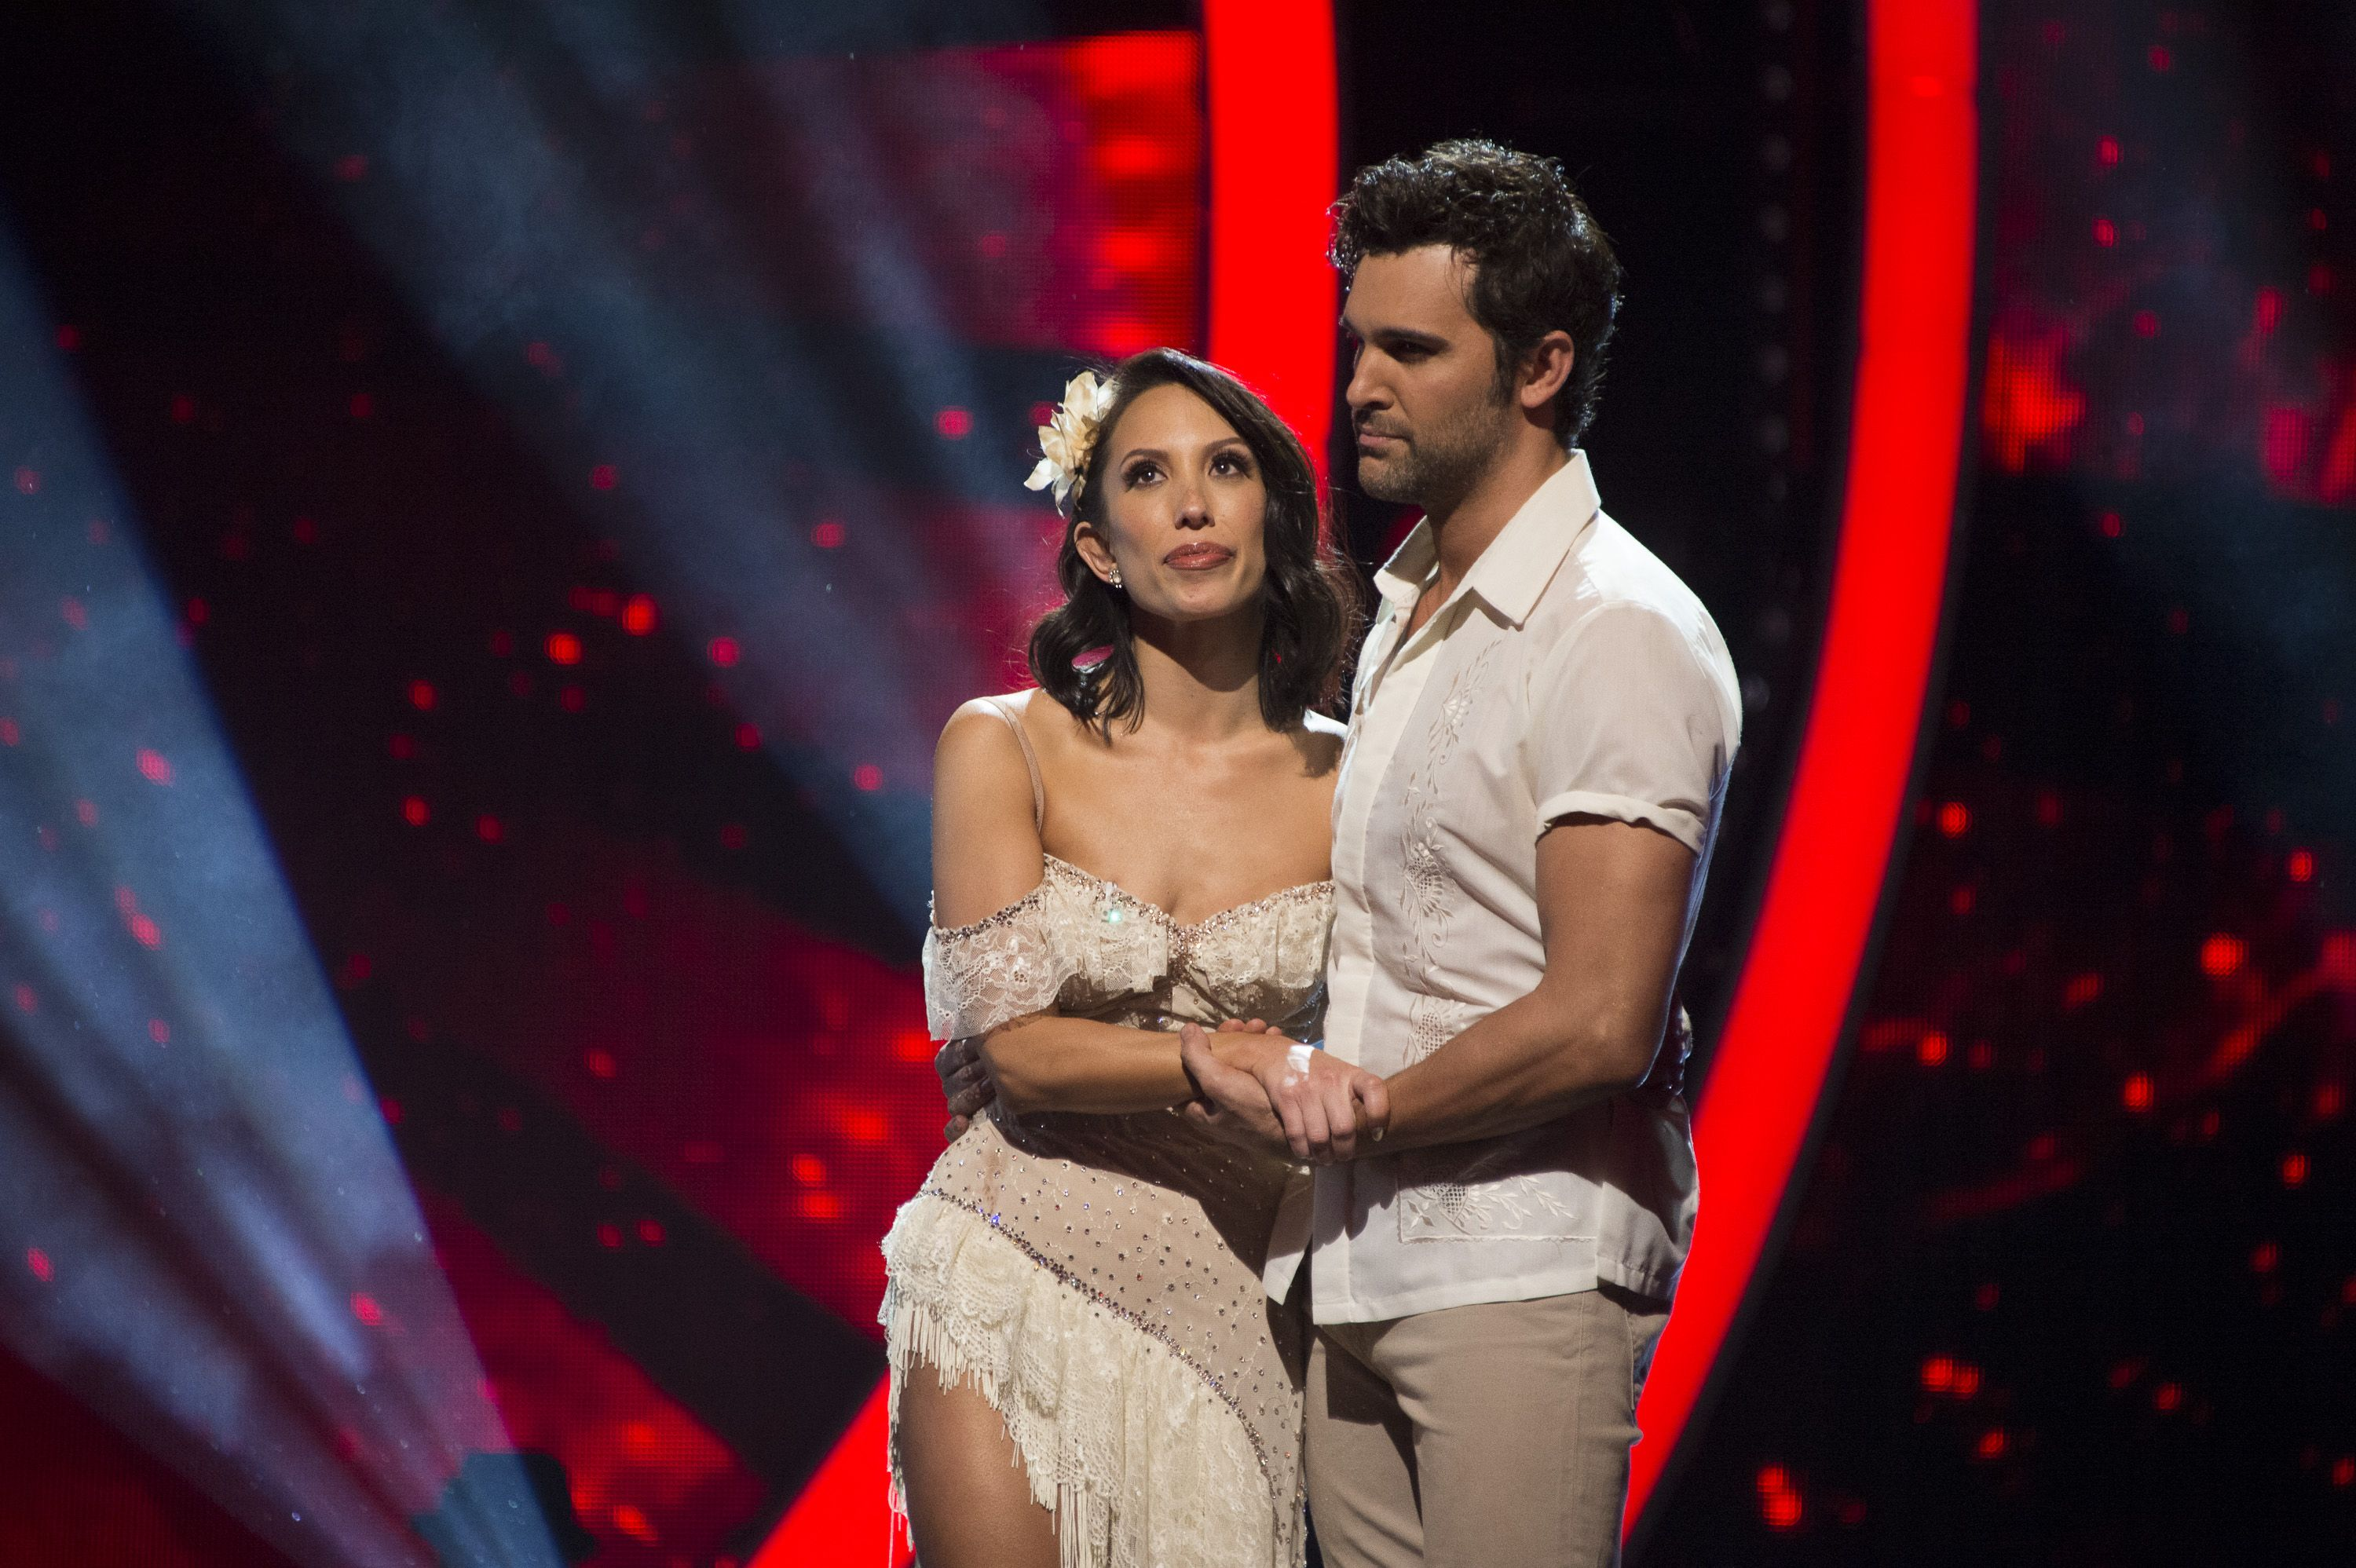 dancing with the stars fans are still freaking out over juan pablo